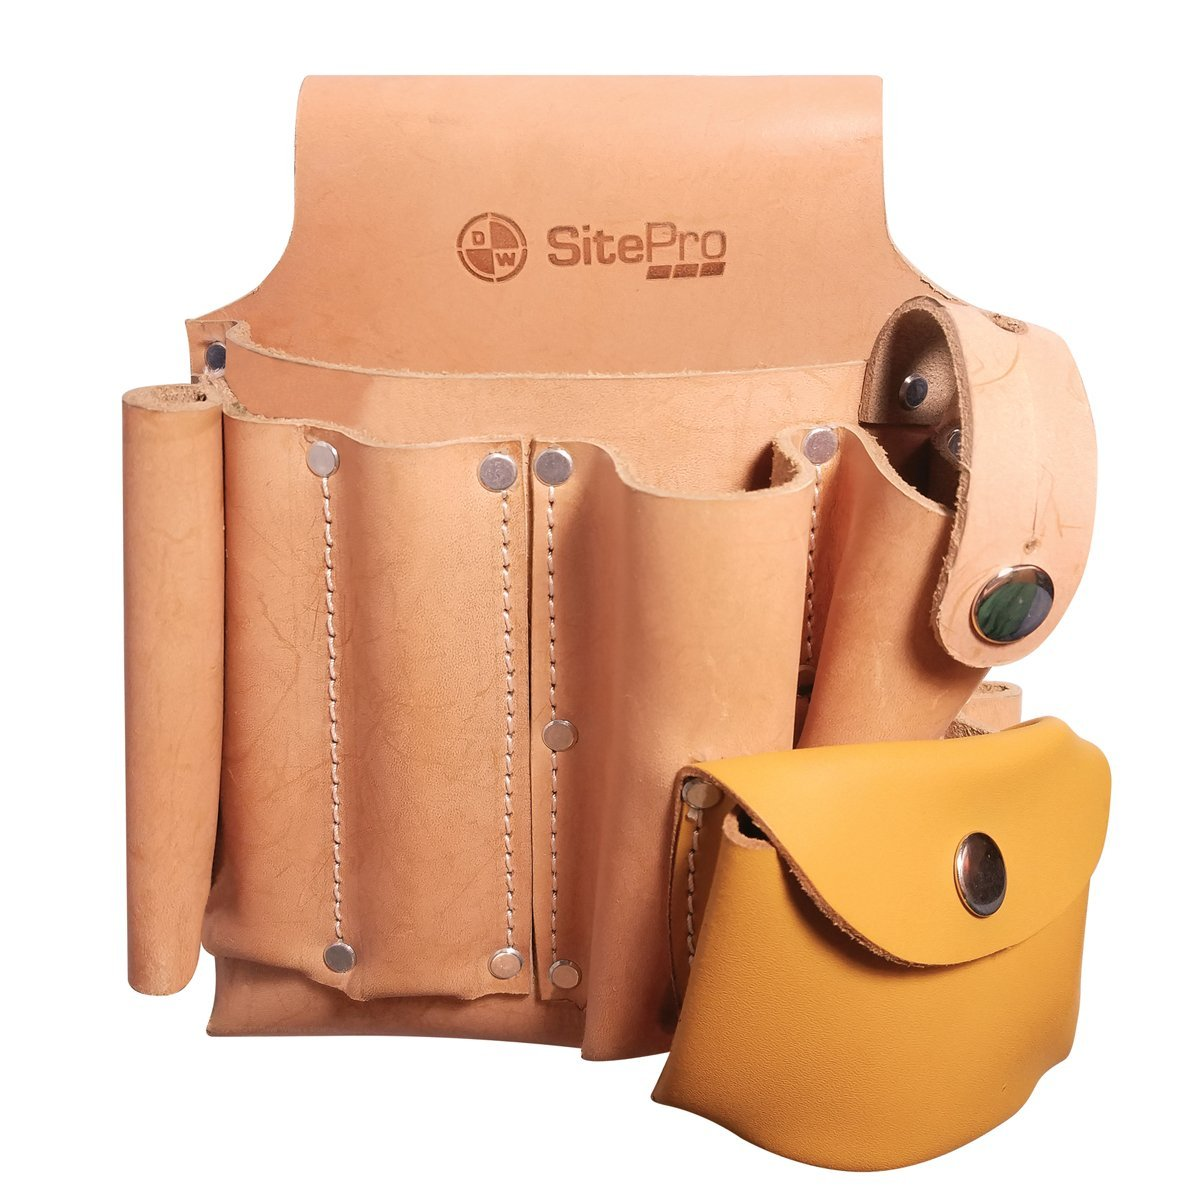 Sitepro 9-Pocket Professional Contractor Tool Pouch